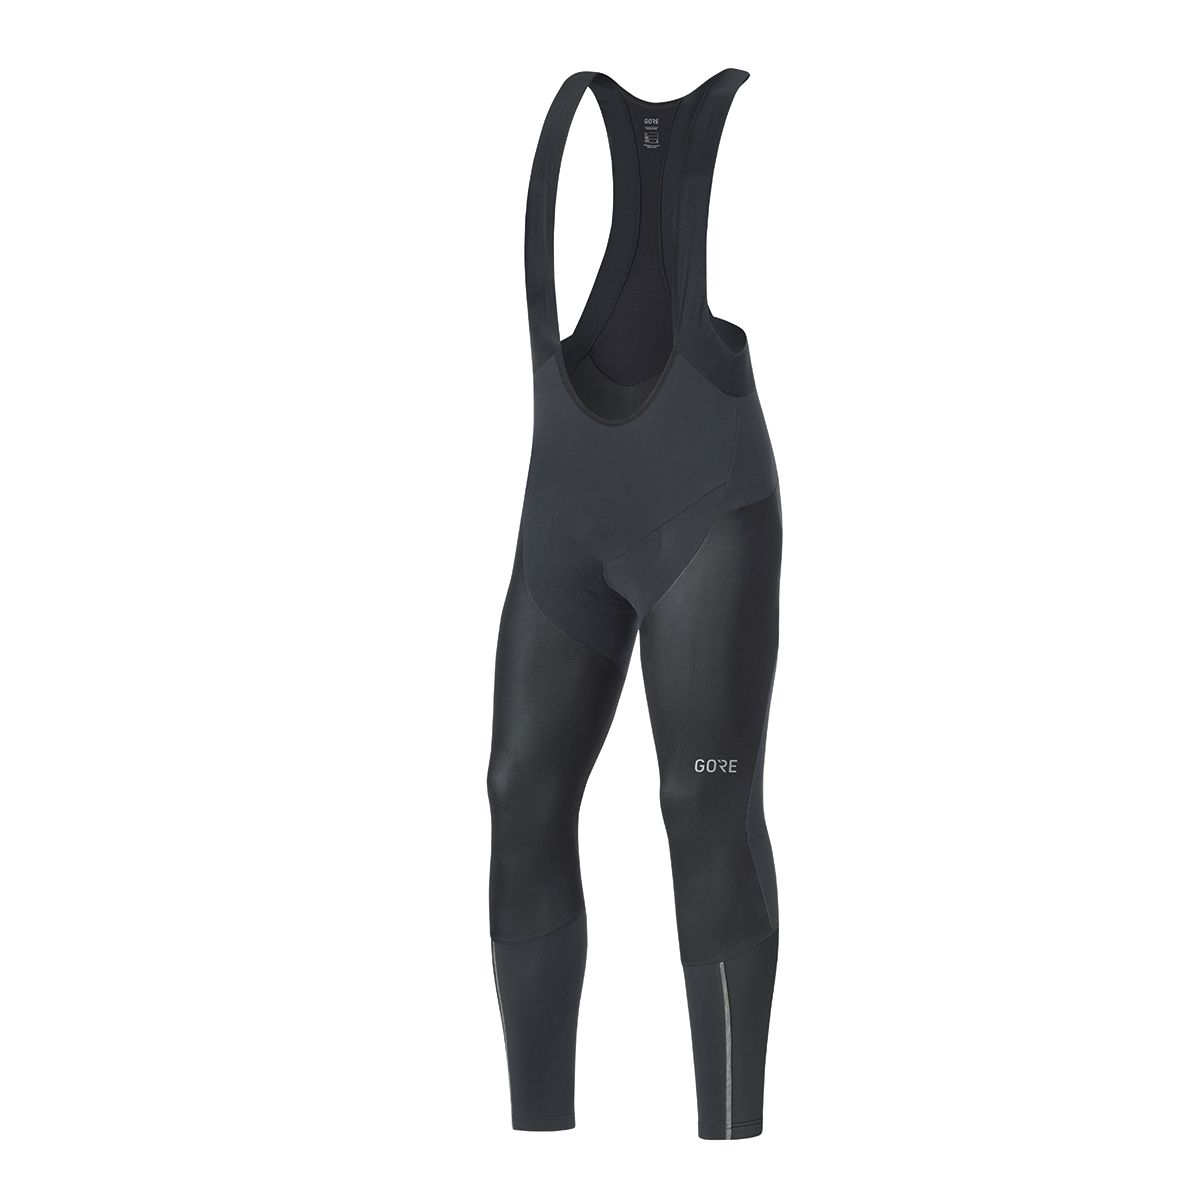 C7 PARTIAL GORE WINDSTOPPER PRO BIB TIGHTS+ Herren Thermo Trägerhose